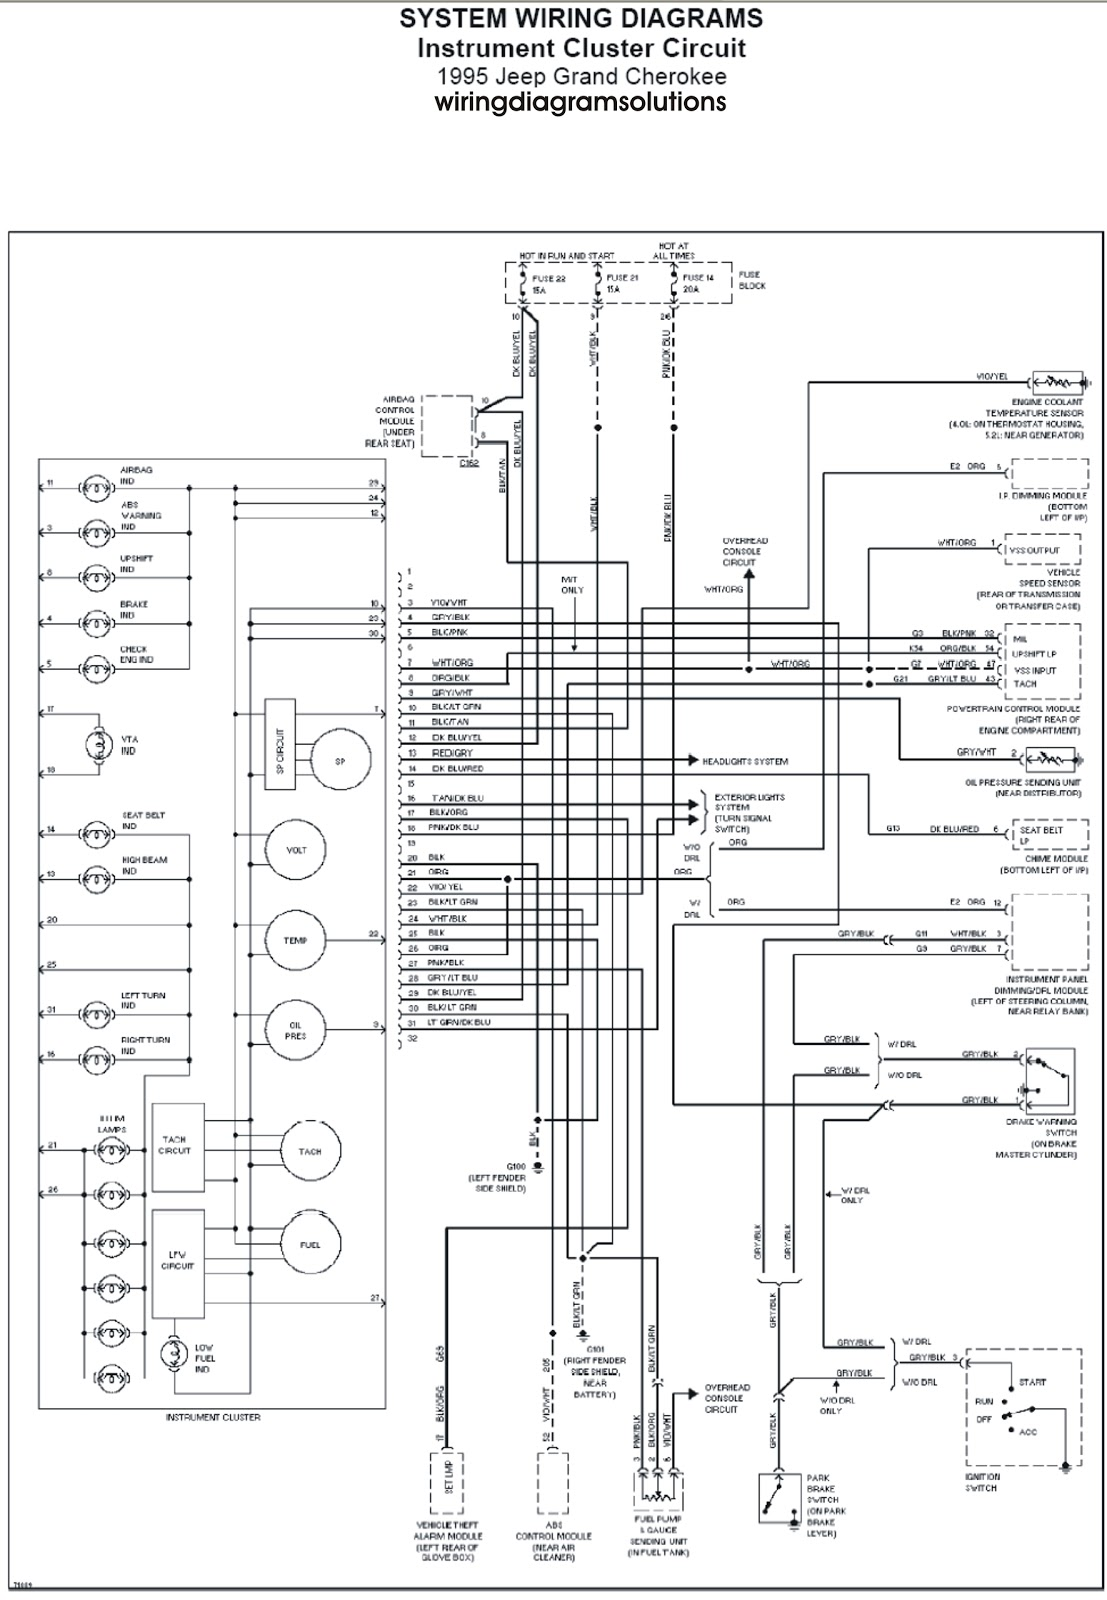 1996 Jeep Xj Engine Bay Diagram Wiring Library. 1998 Jeep 4 0 Wiring Schematic Simple Diagram Grand Cherokee 40 Engine 1993. Wiring. Alpine Cde 143bt Wiring Diagram Xj At Scoala.co